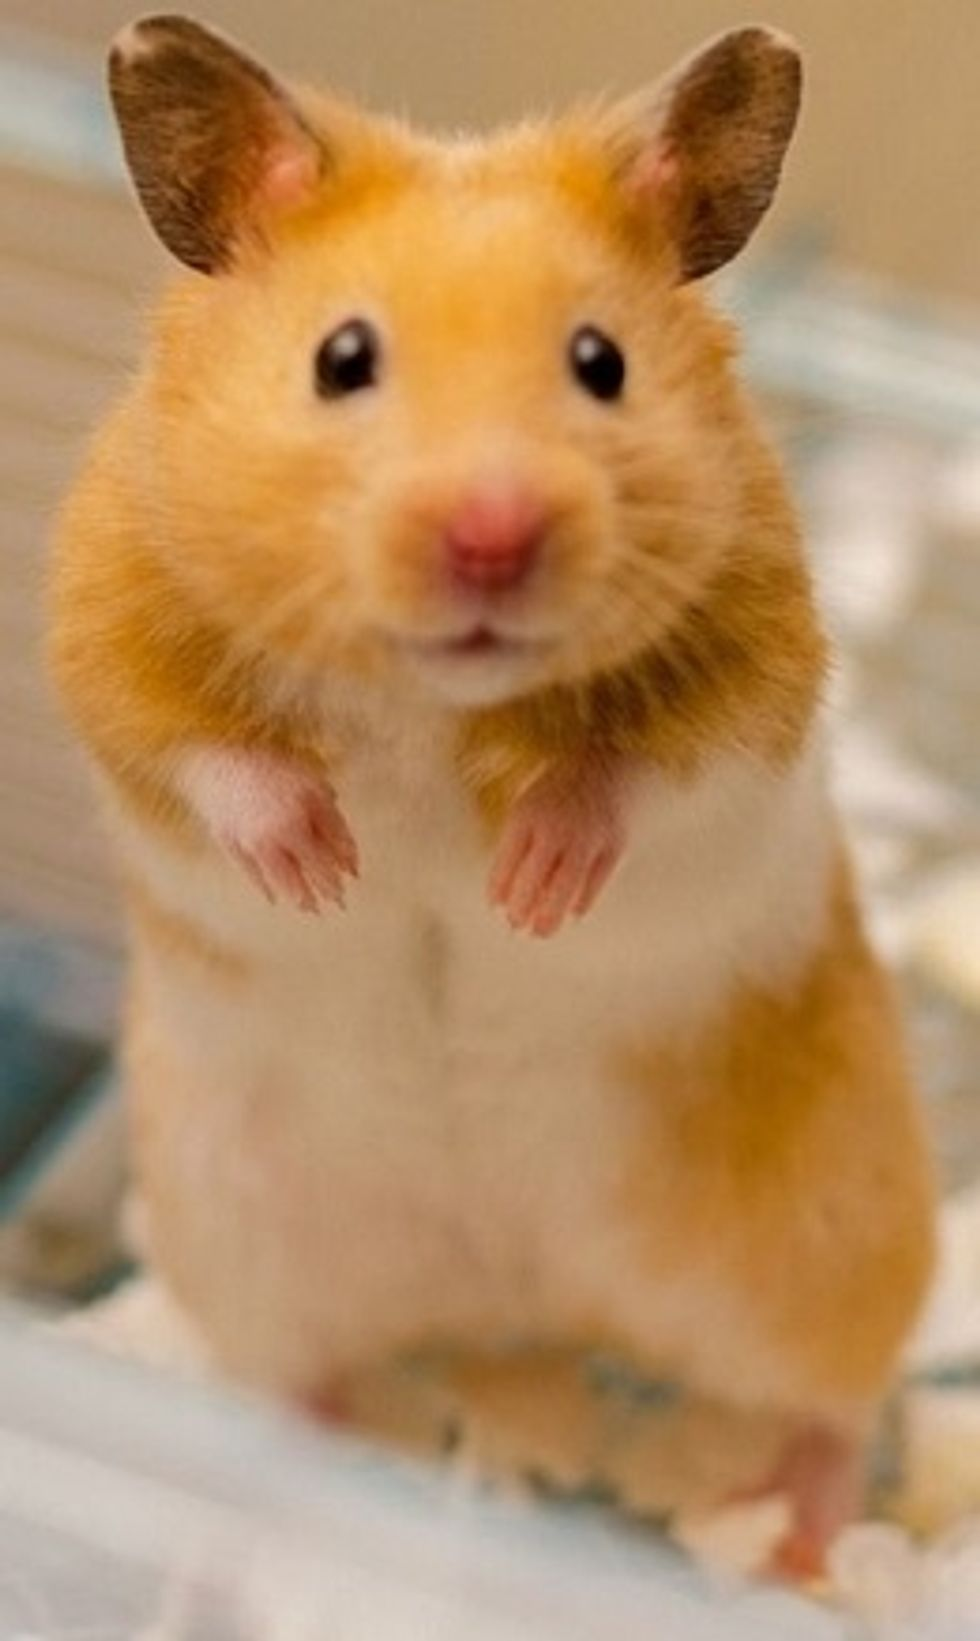 Tips And Tricks To Owning a Hamster